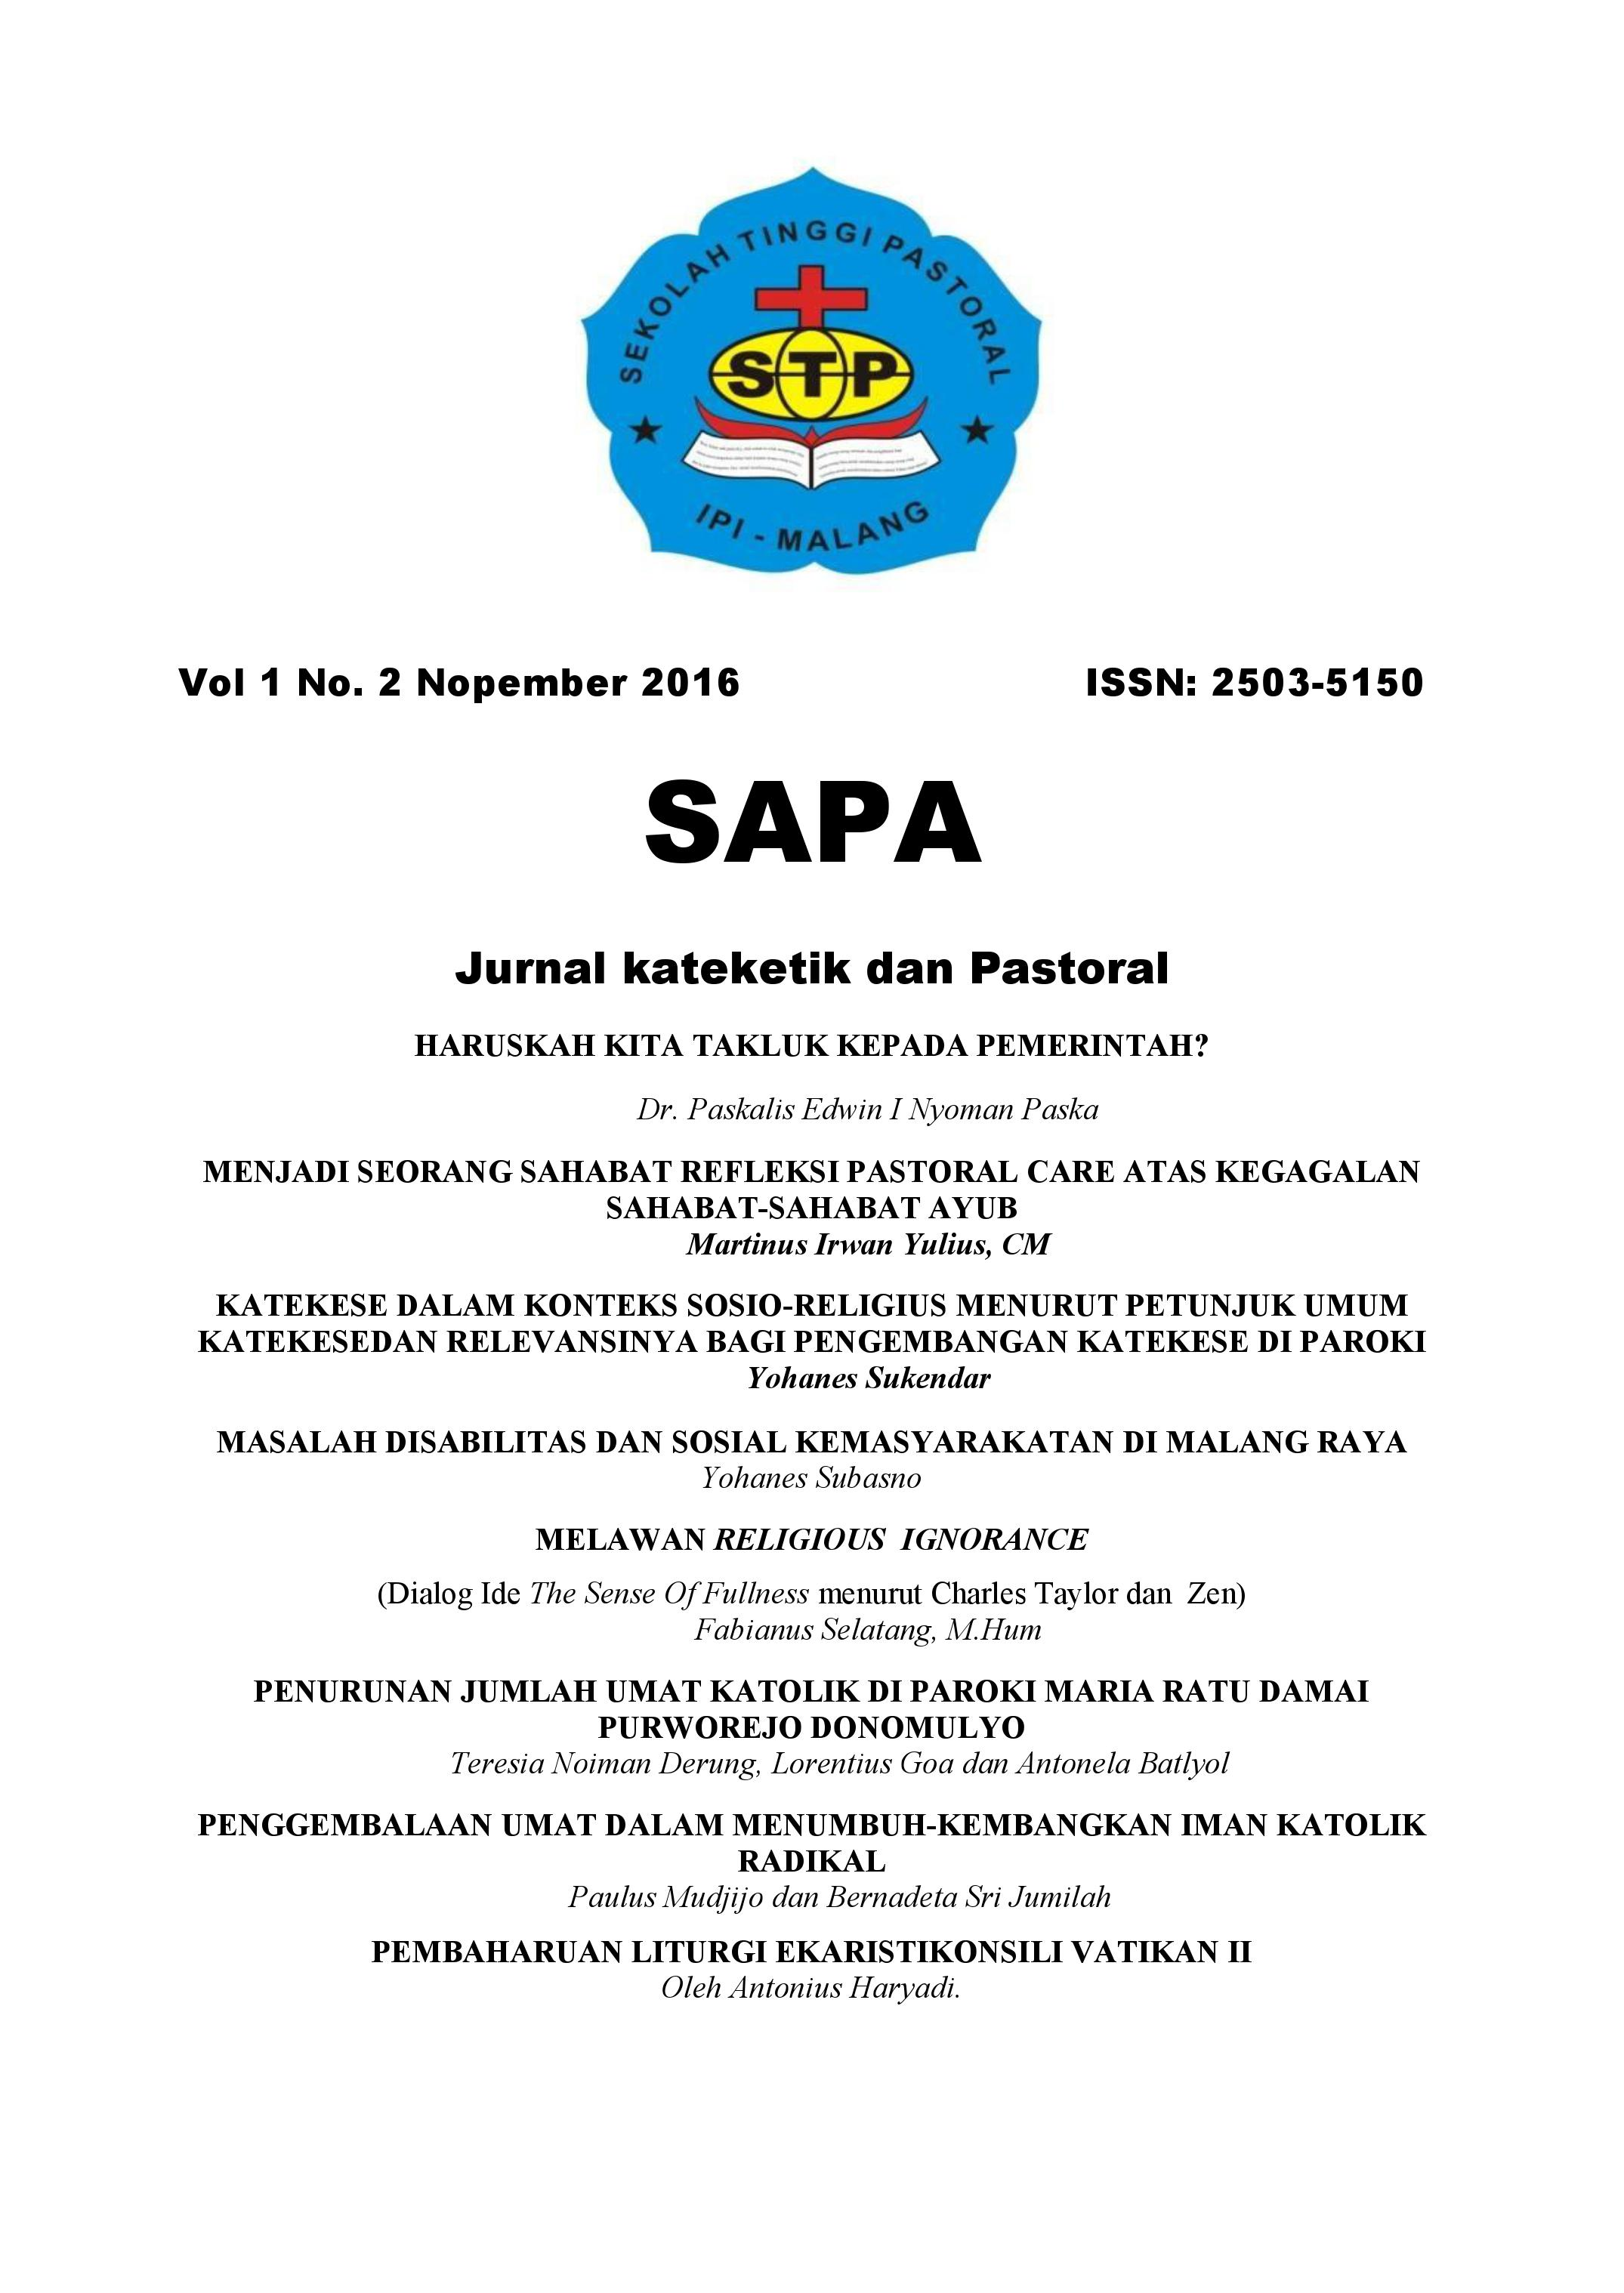 SAPA volume 1 number 2